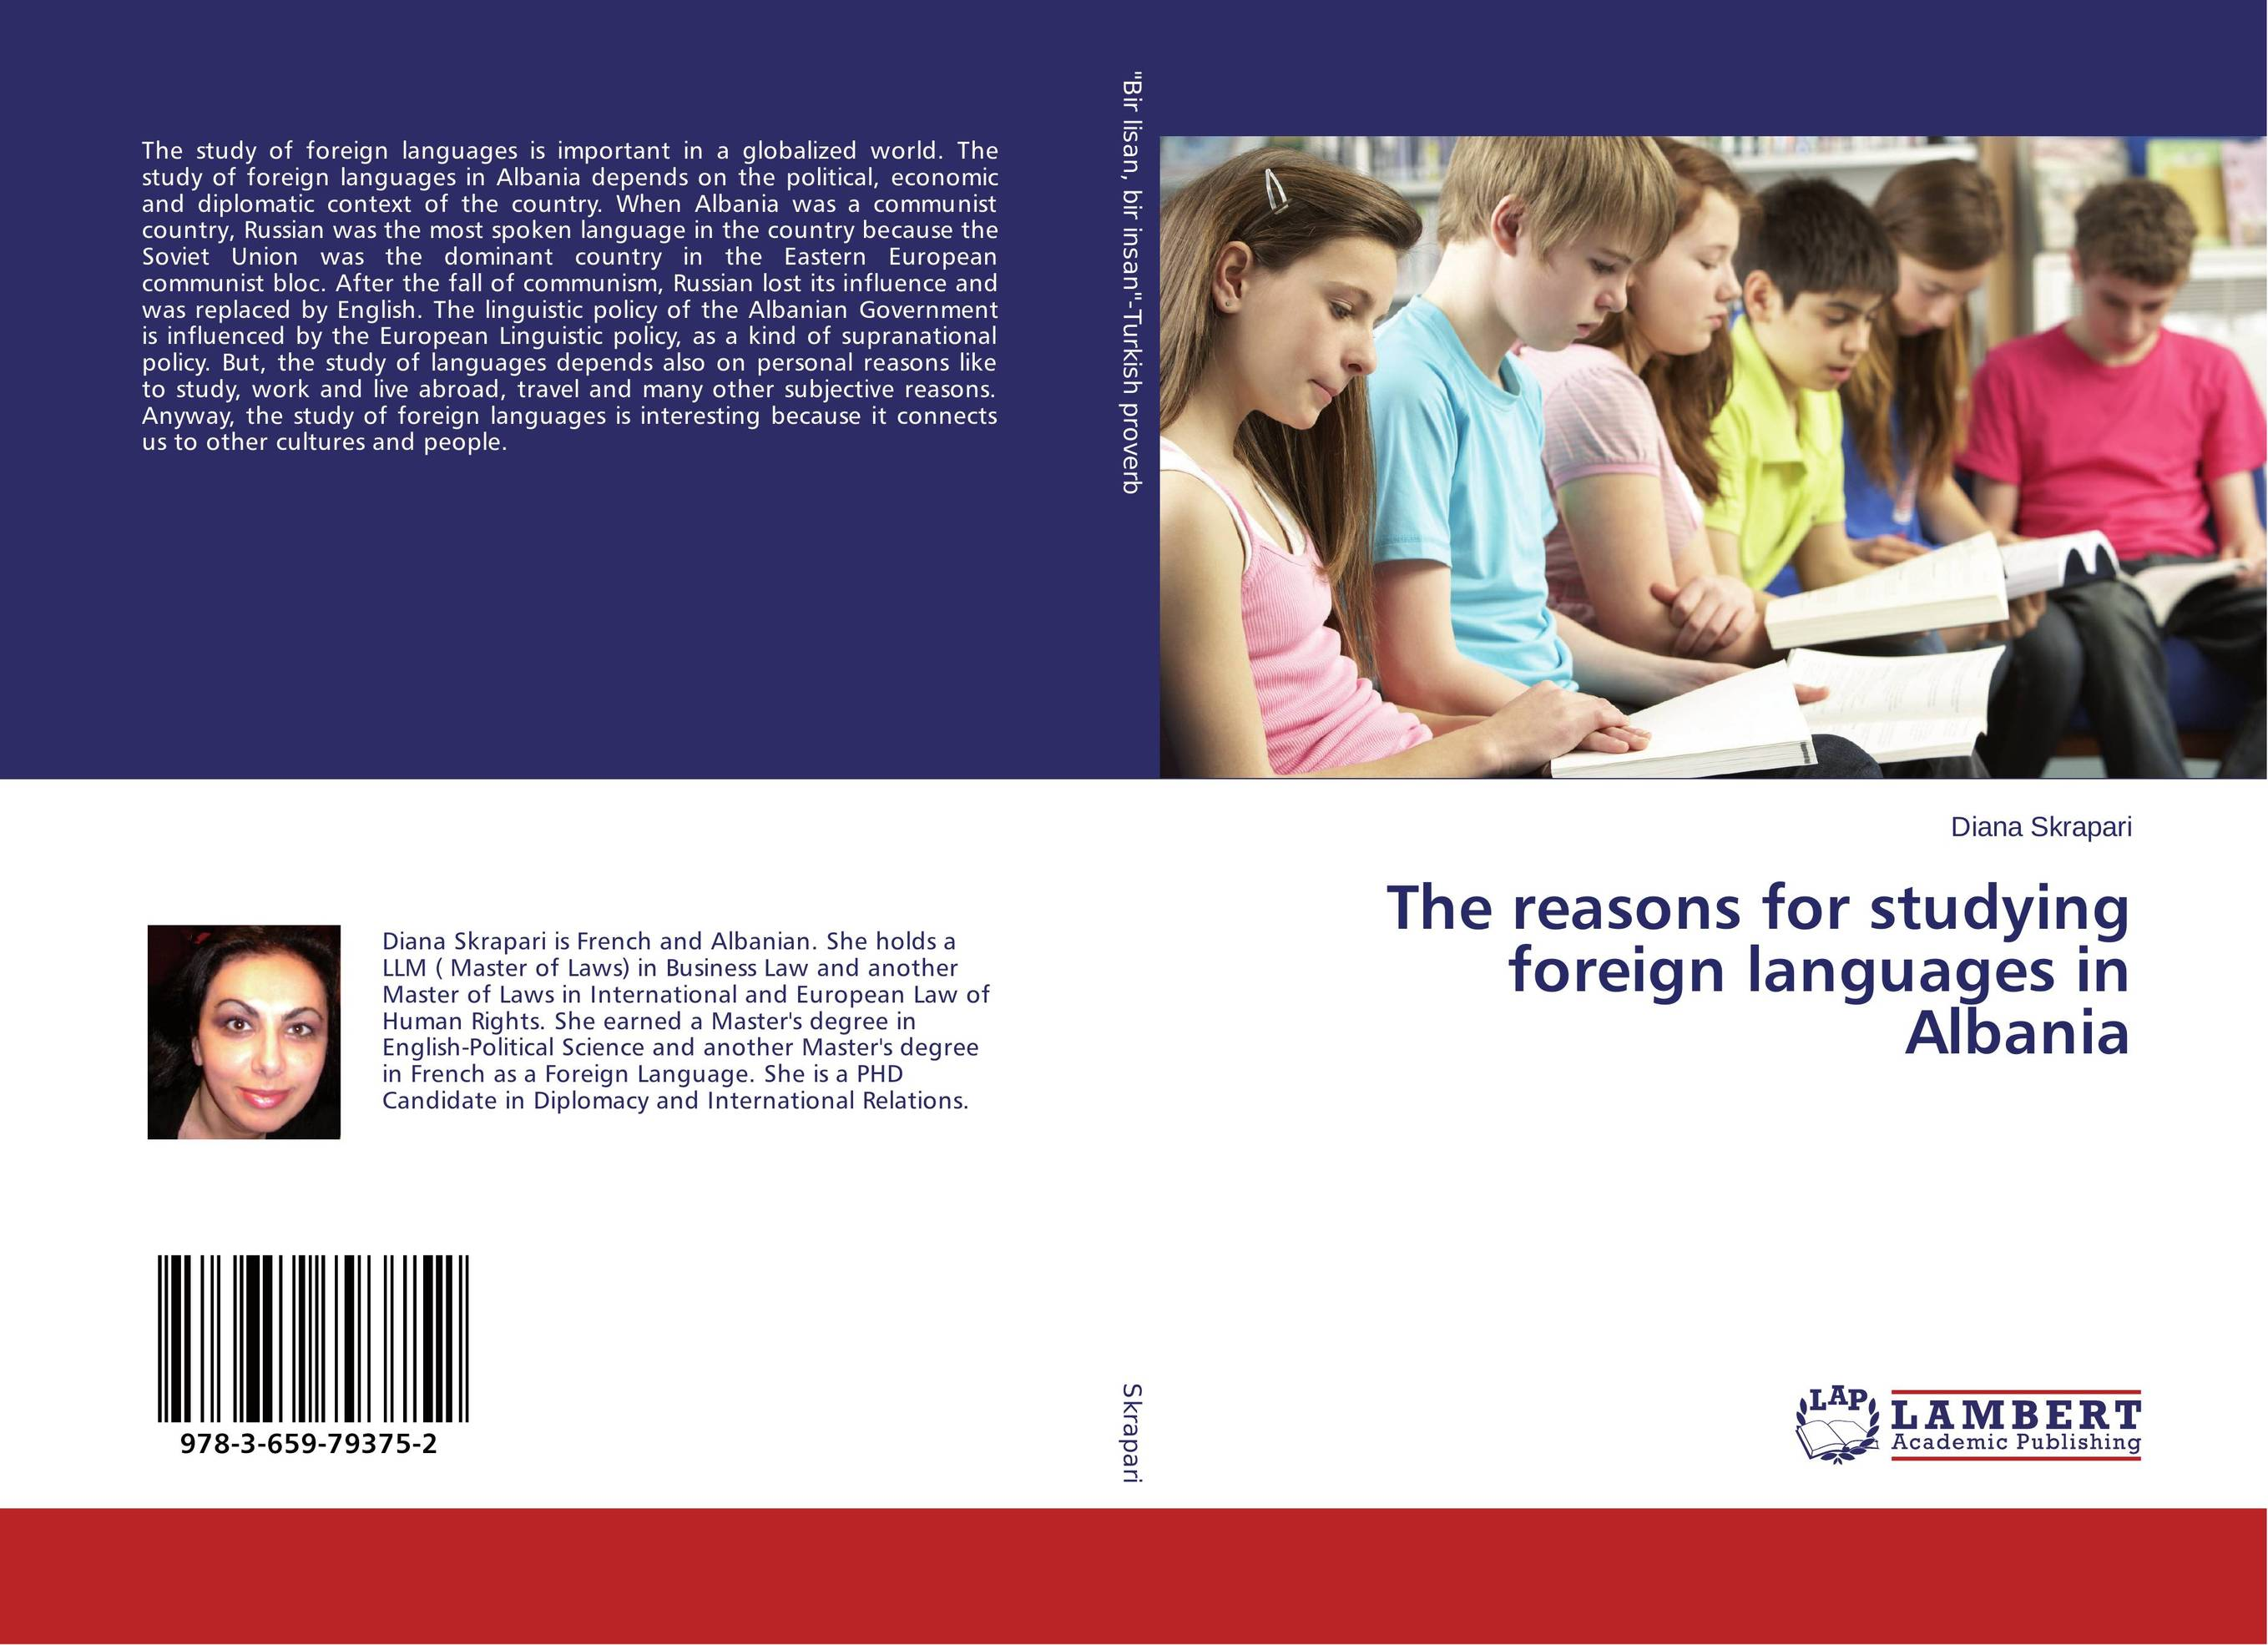 The reasons for studying foreign languages in Albania julian di ridolfo nato and the european security and defense policy